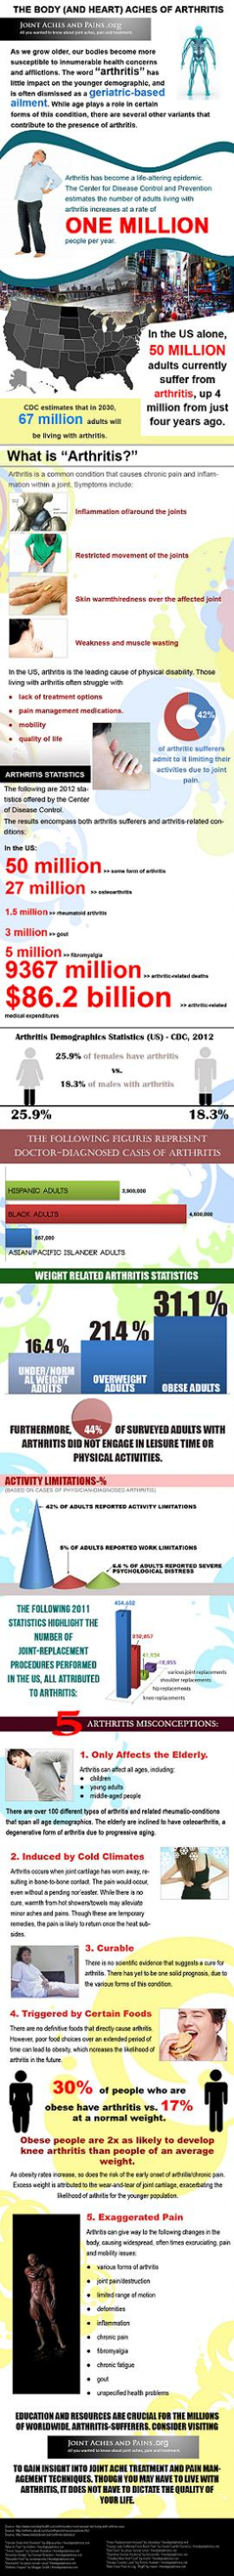 The Body (And Heart) Aches of Arthritis Infographic